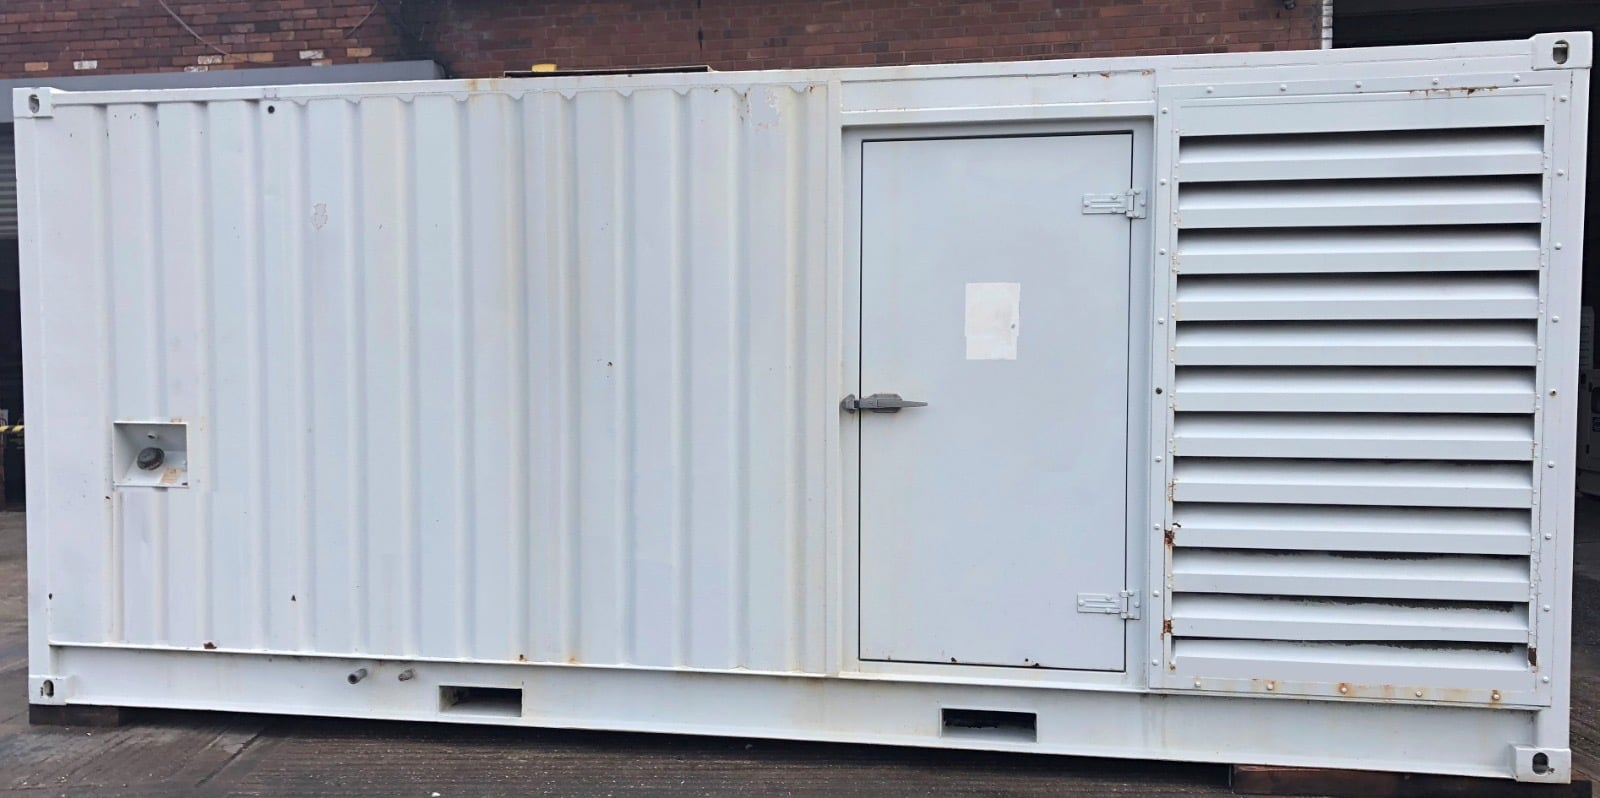 891 KVA Cummins Stamford in a 20 ft Acoustic Container